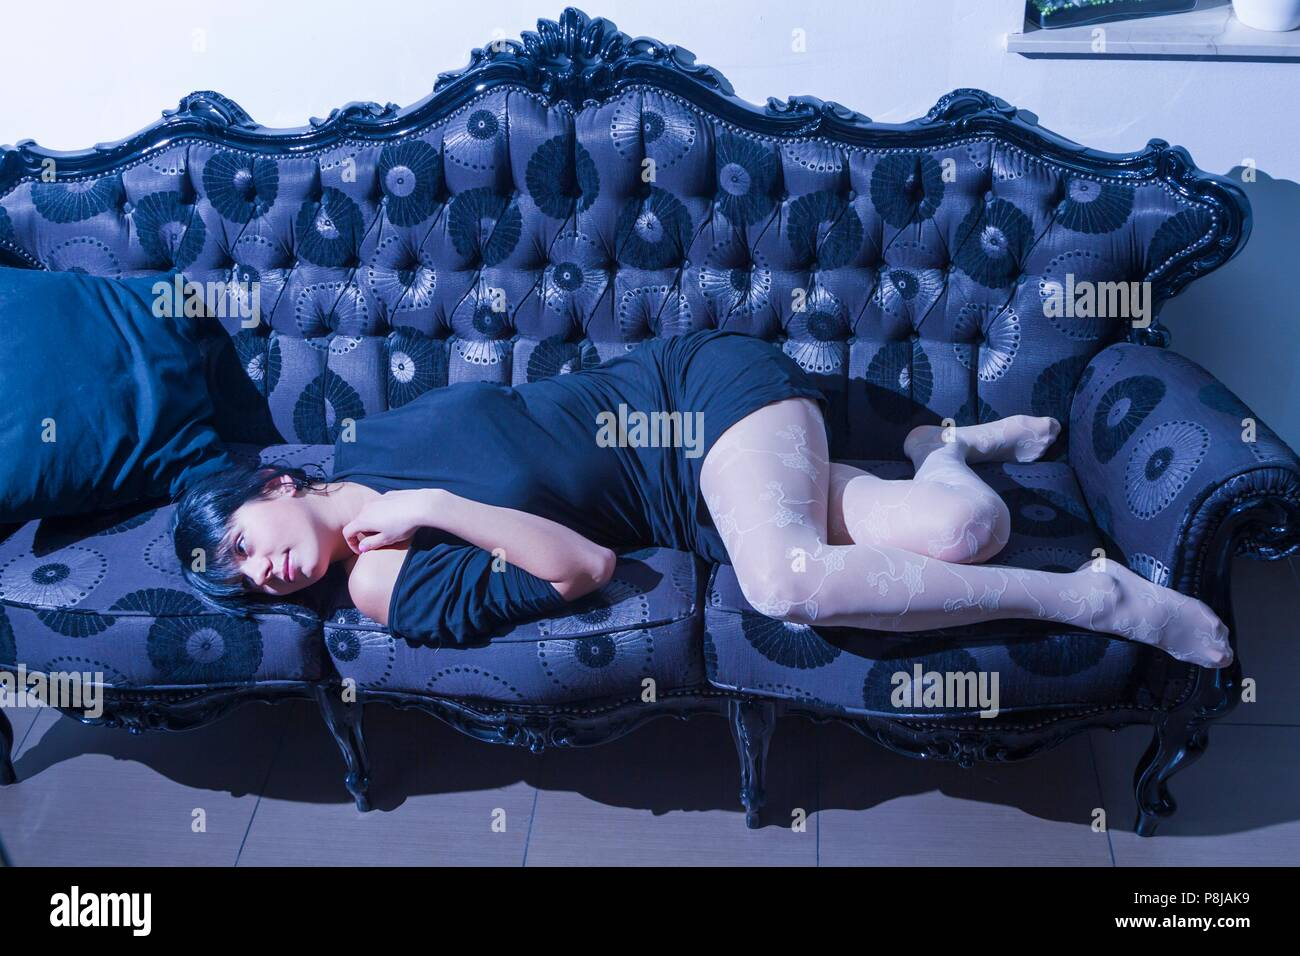 Lying indoors at night after coming home aftermath lifestyle - Stock Image